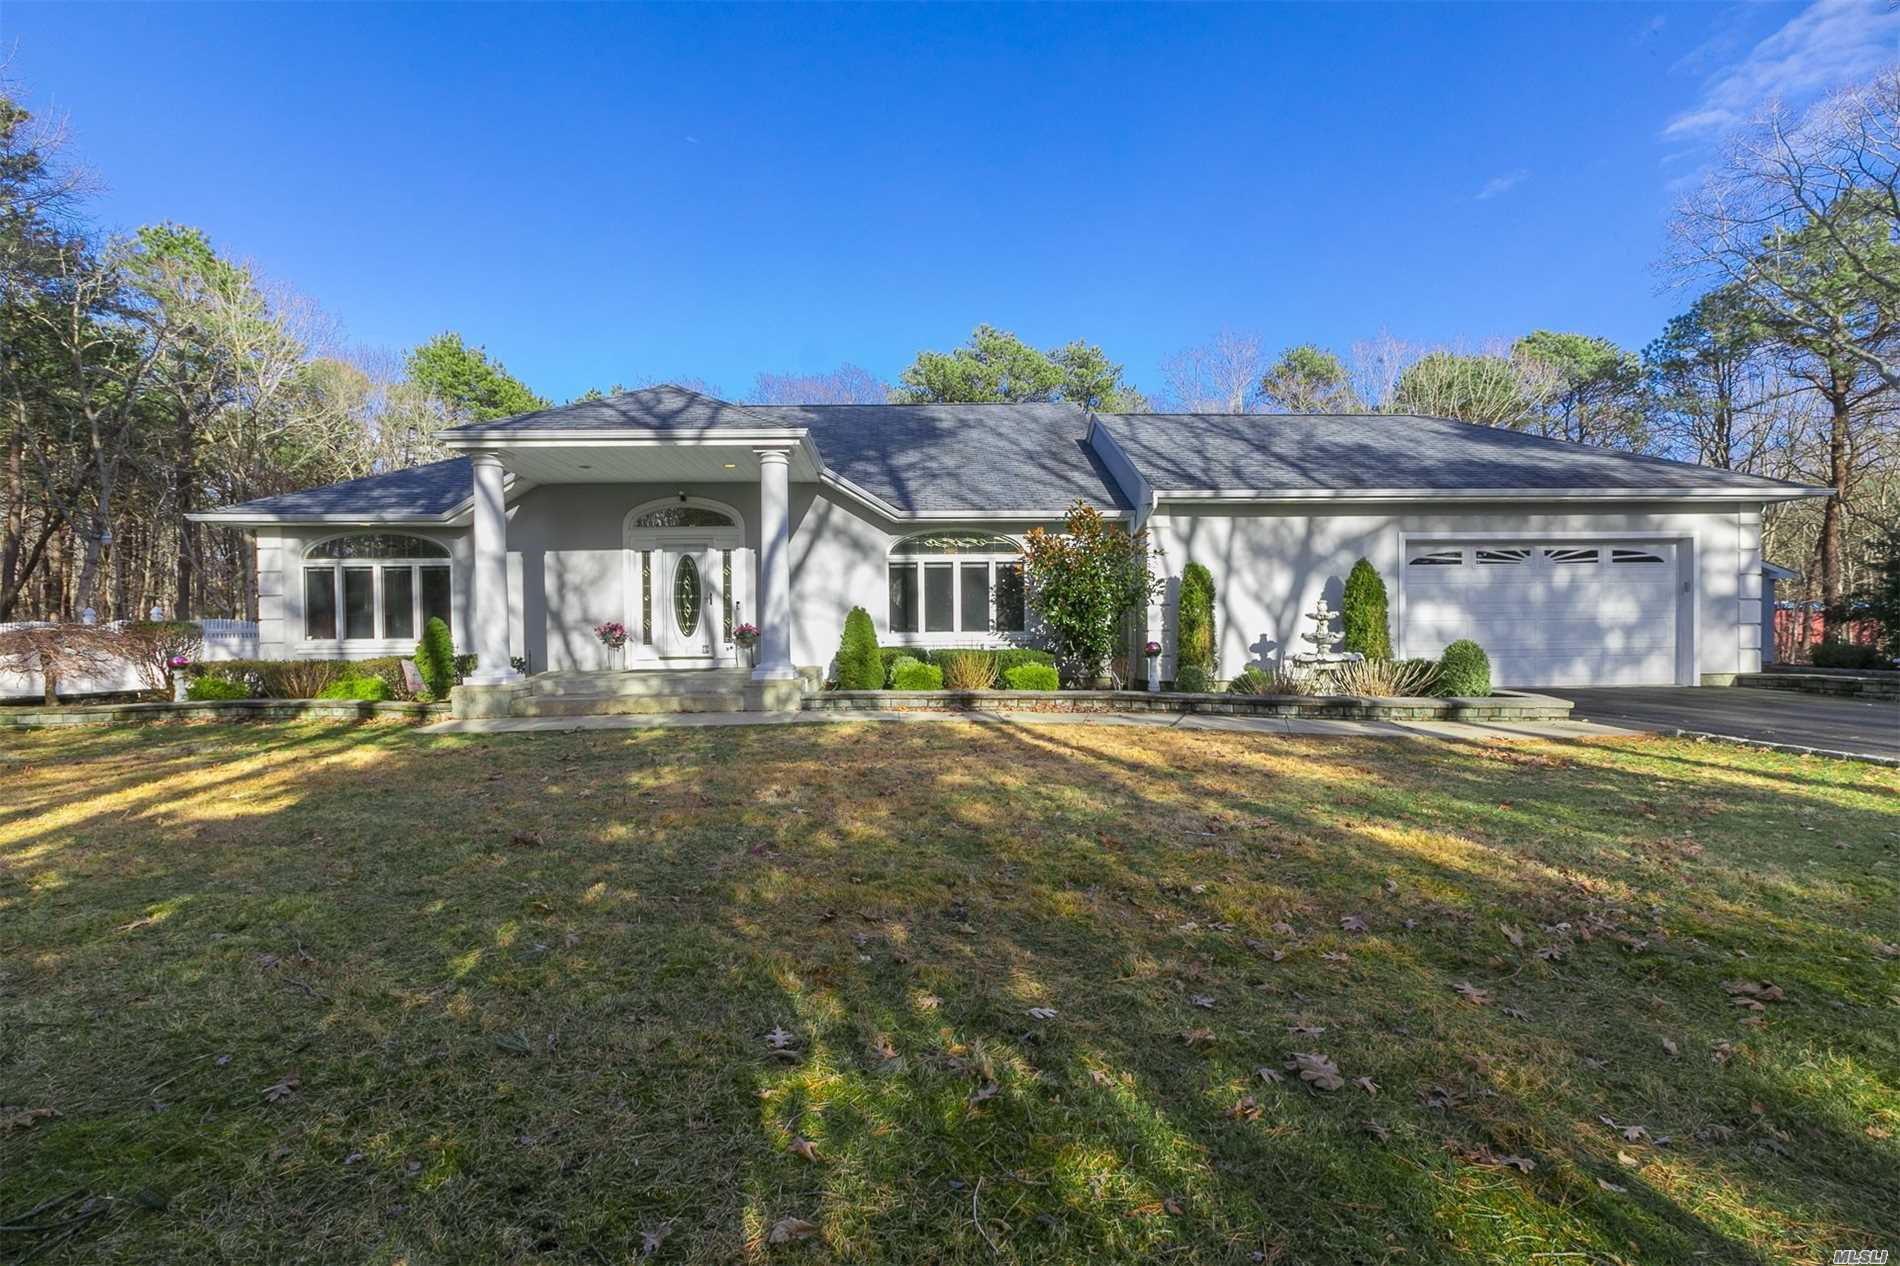 Diamond Custom Built Ranch on 2 Acres, A Property Lovers Delight, Plenty of Room For Horses, Oversized 4 Car Garage (Att & Det), Semi In Ground 12x33 Pool, Sunroom W/Heat & AC, Vaulted Ceiling, Custom Floors, Crown Molding, 2 Fireplaces, Fully Finished Basement W/ Outside Entrance, Professionally Landscaped, Trex Deck, In Ground Sprinklers, 24 Hour Generator & Many More Amenities.